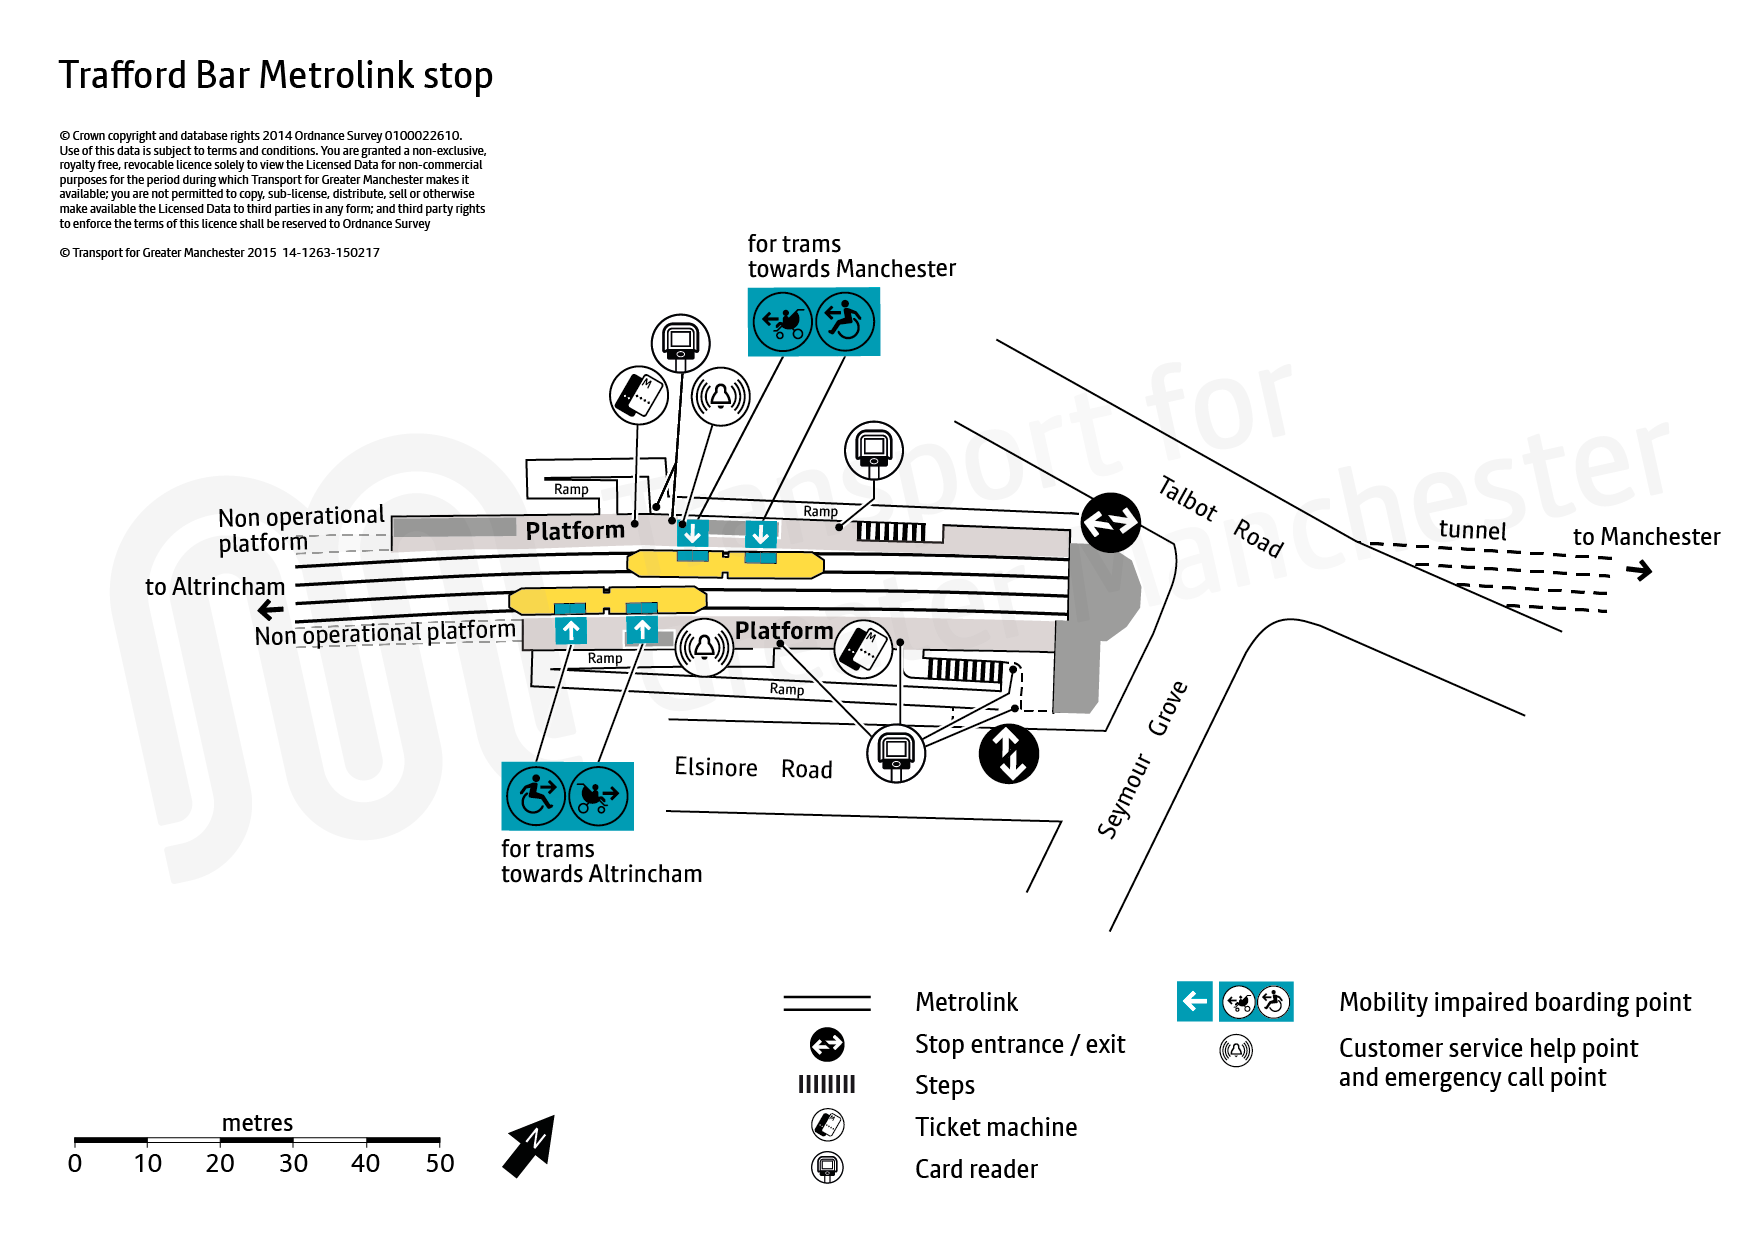 Stop map for Trafford Bar tram stop